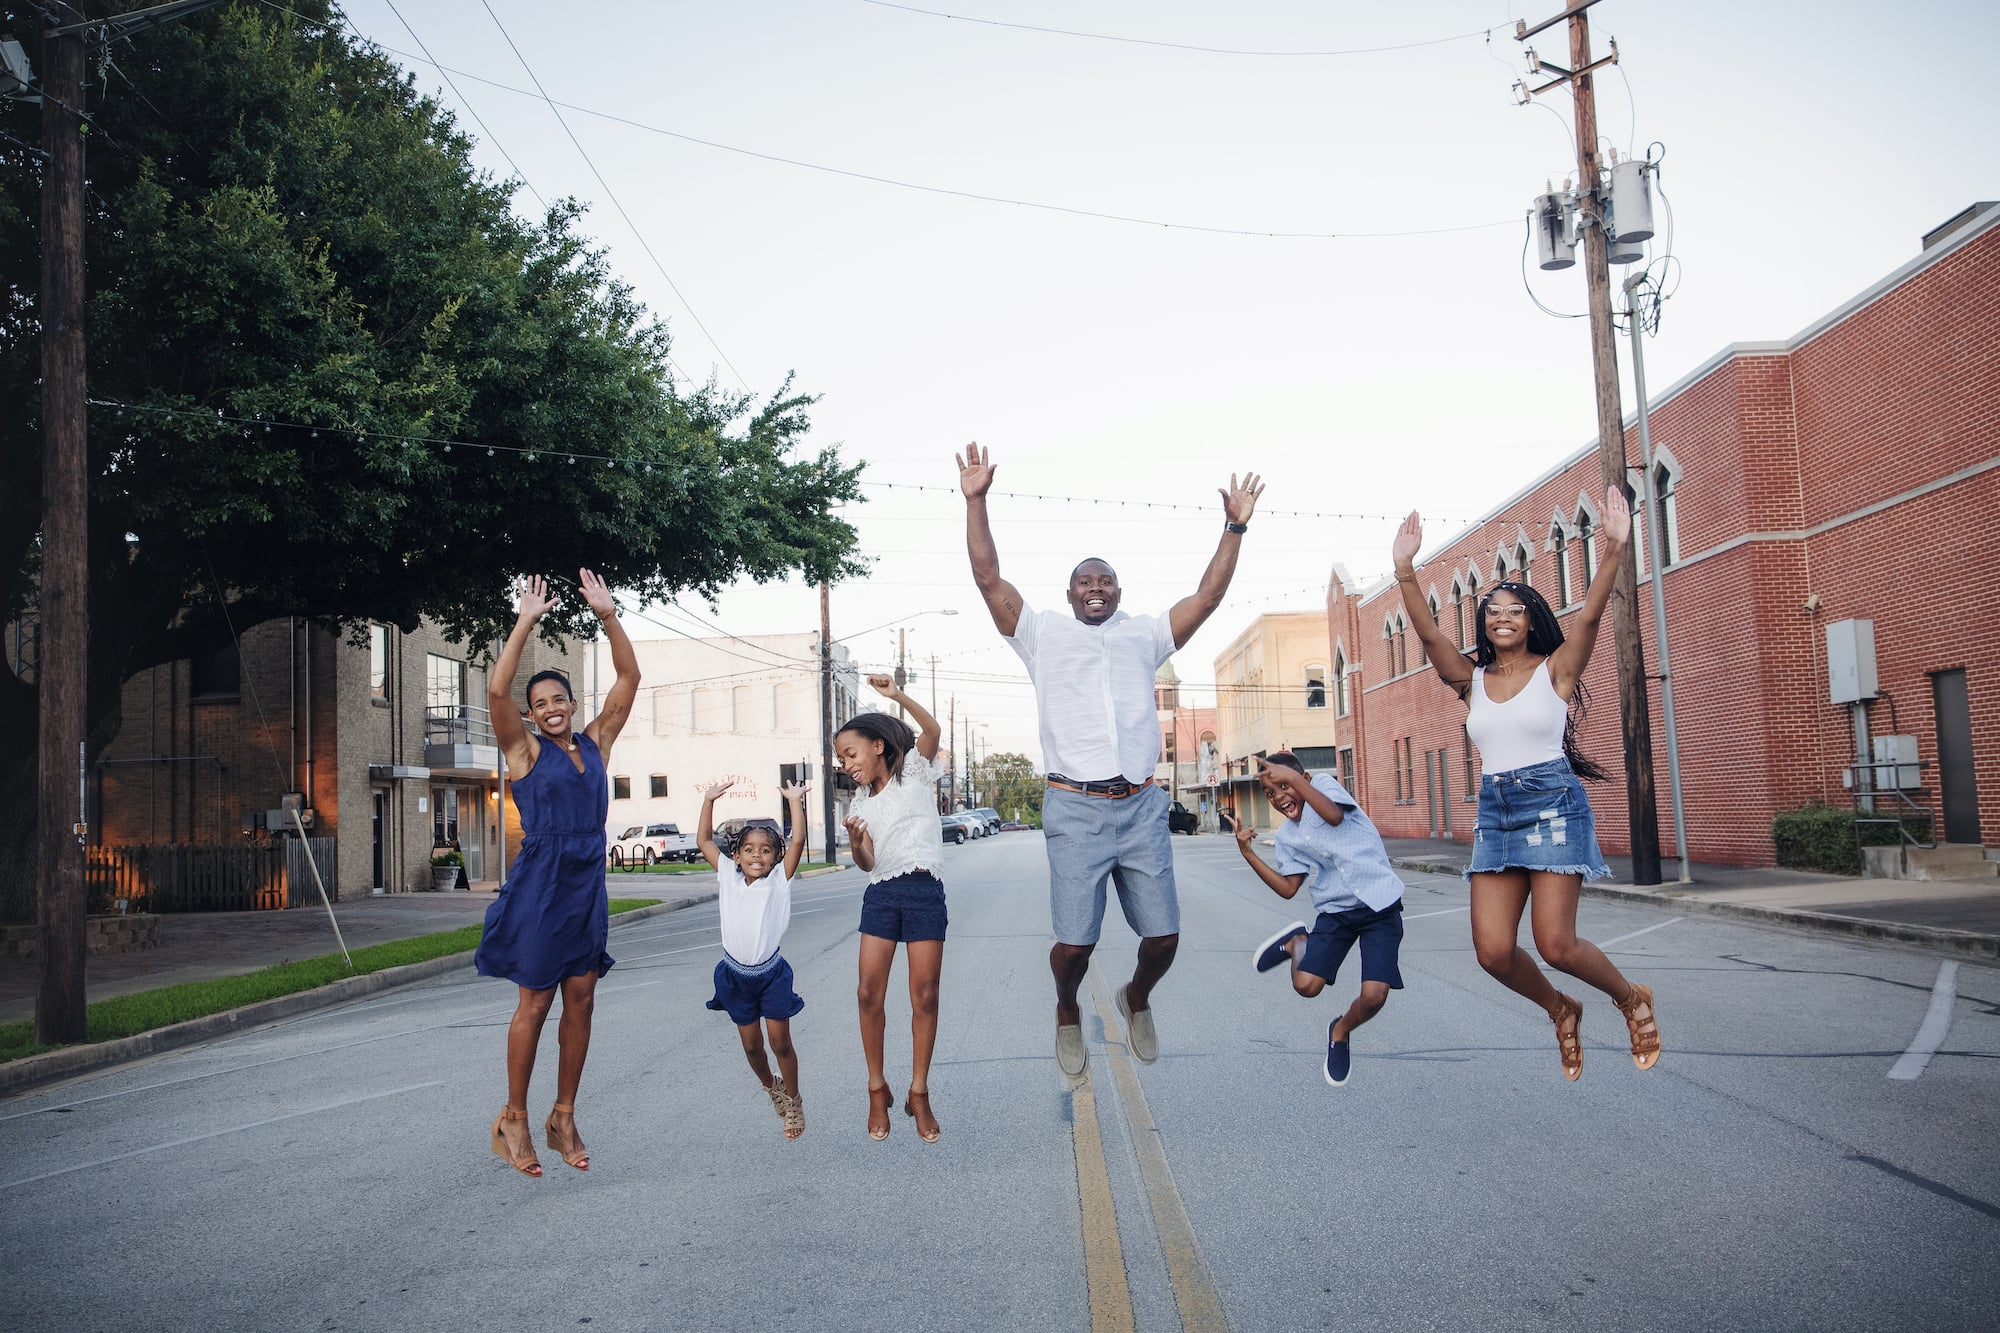 Family session jumping